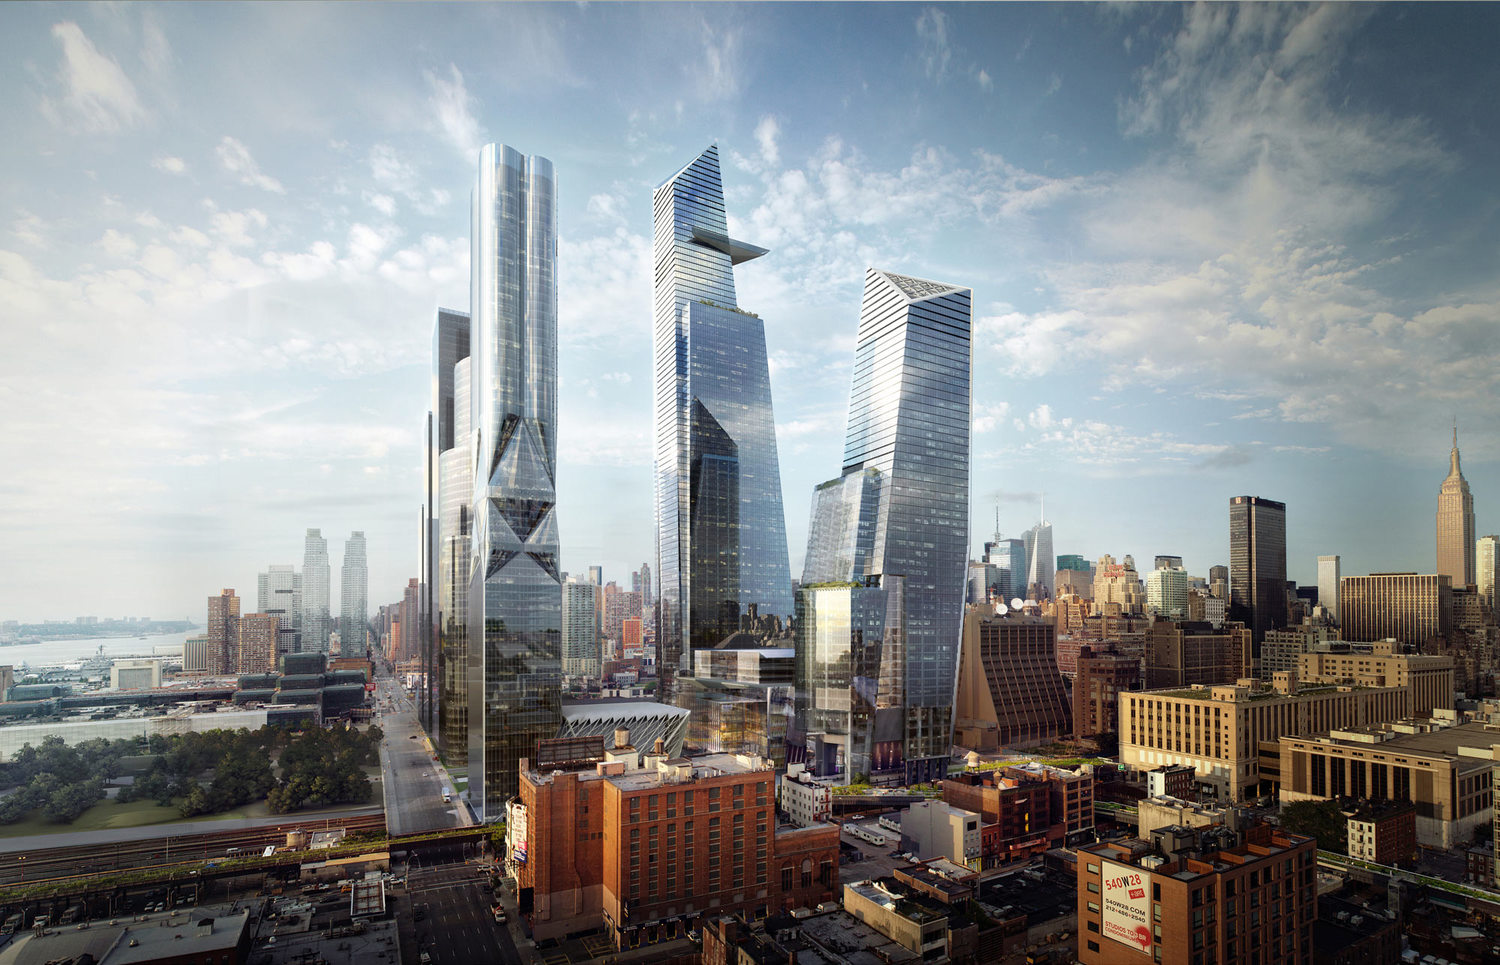 Occupying the lot bounded by 31st and 33rd streets between Ninth and Tenth avenues, Manhattan West will lie adjacent to the City's up-and-coming Hudson Yards—a 17,000-million-square-foot development spanning 28 acres (half of which will be dedicated to open public space).